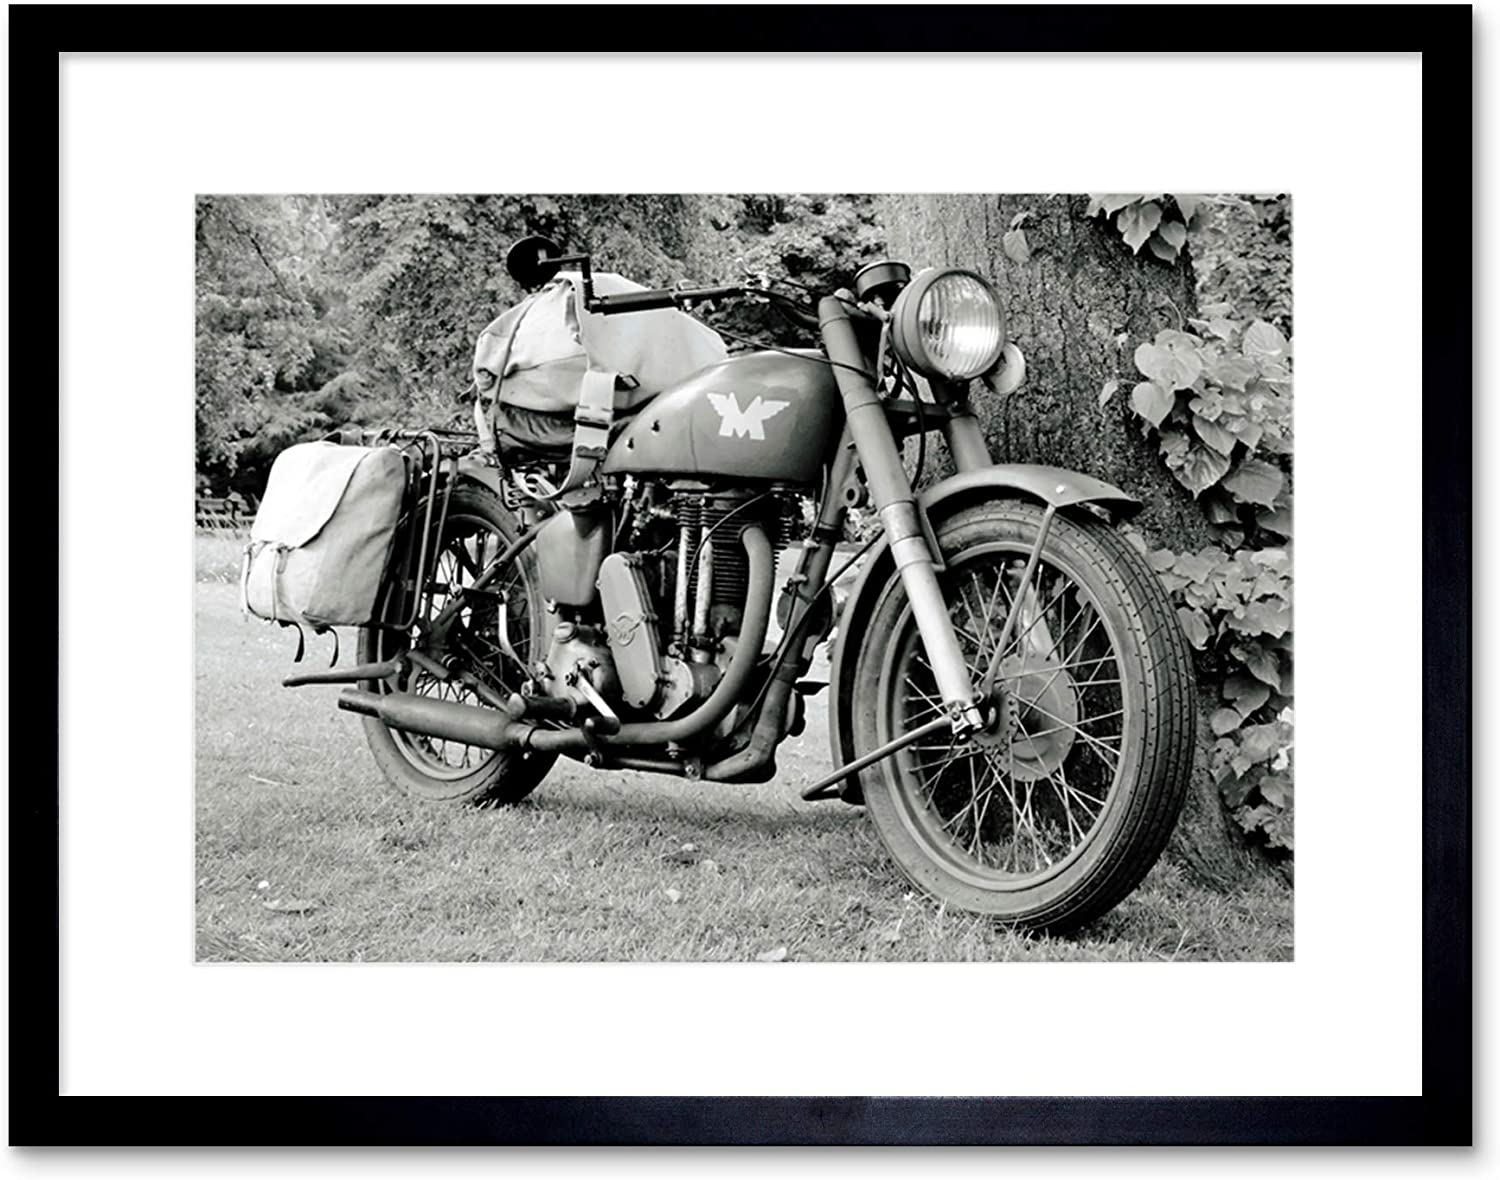 CULTURAL MILITARY TRANSPORT MOTOR CYCLE ARMY USA POSTER ART PRINT PICTURE BB844A